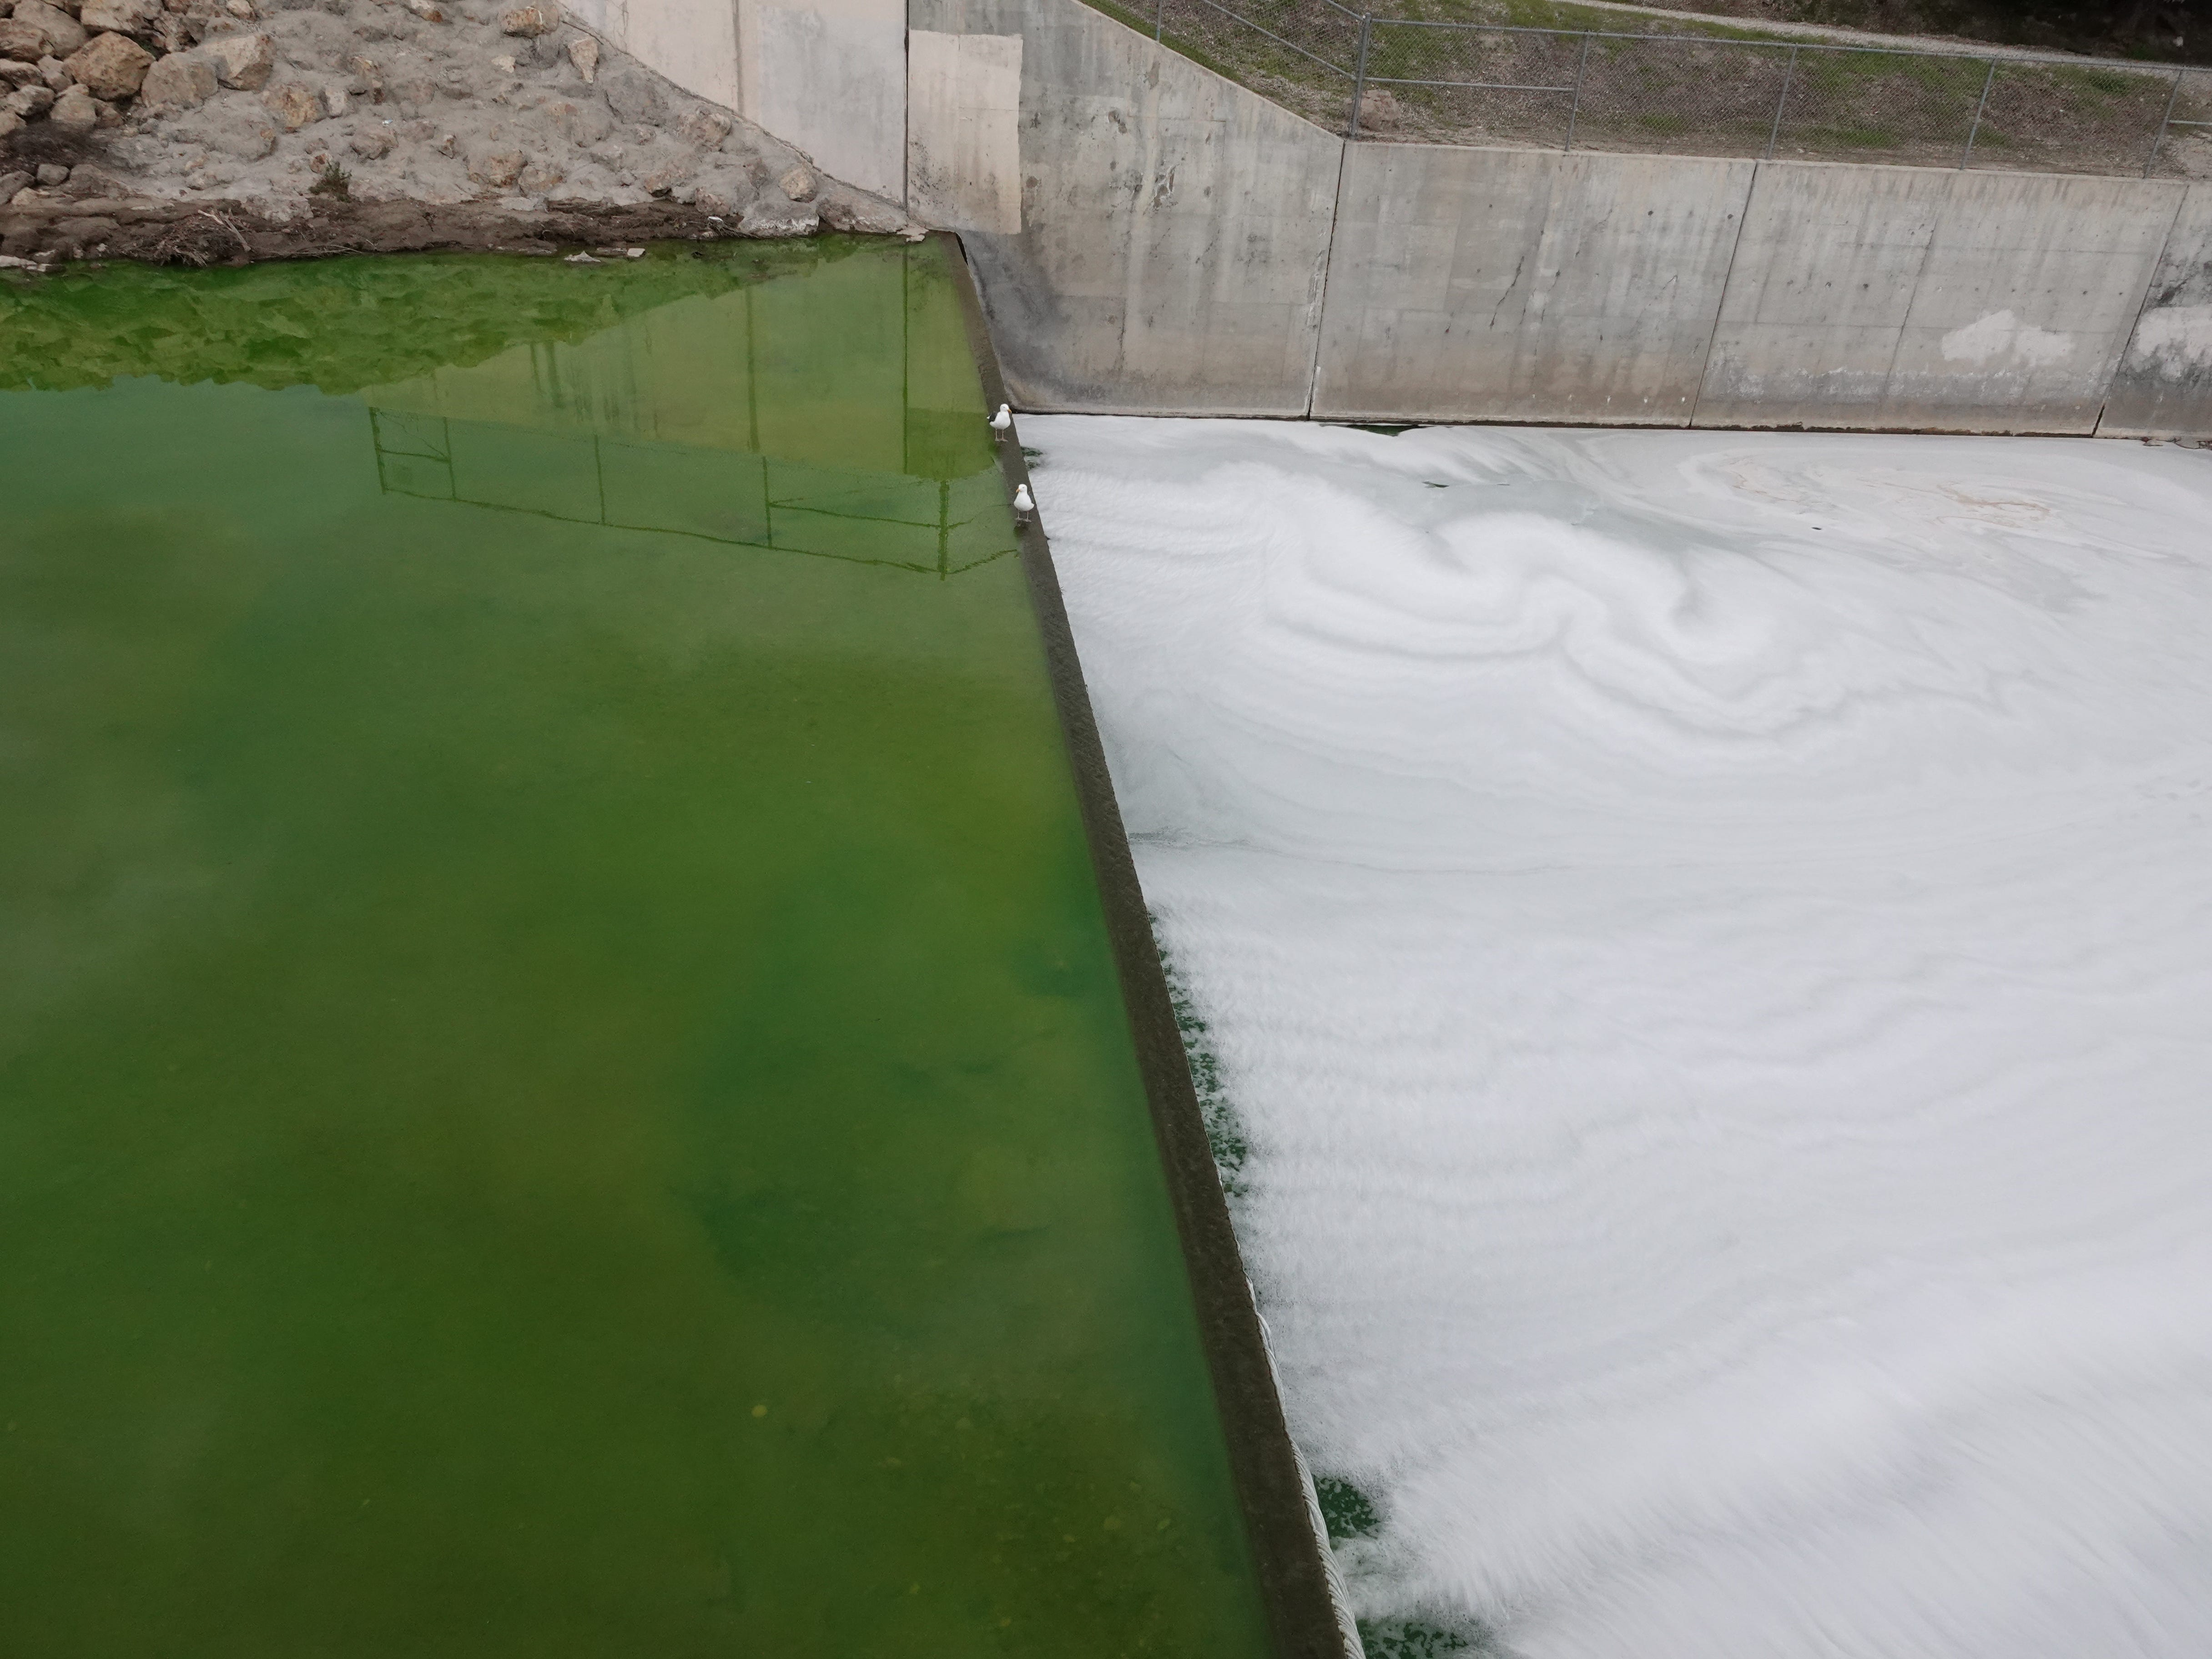 Bright green water contrasts with foam pooled below a small dam in the Arroyo Simi Monday afternoon downstream of Los Angeles Avenue. A substance that colored the water was found to be non-hazardous and likely an automotive polish or wax, officials said.